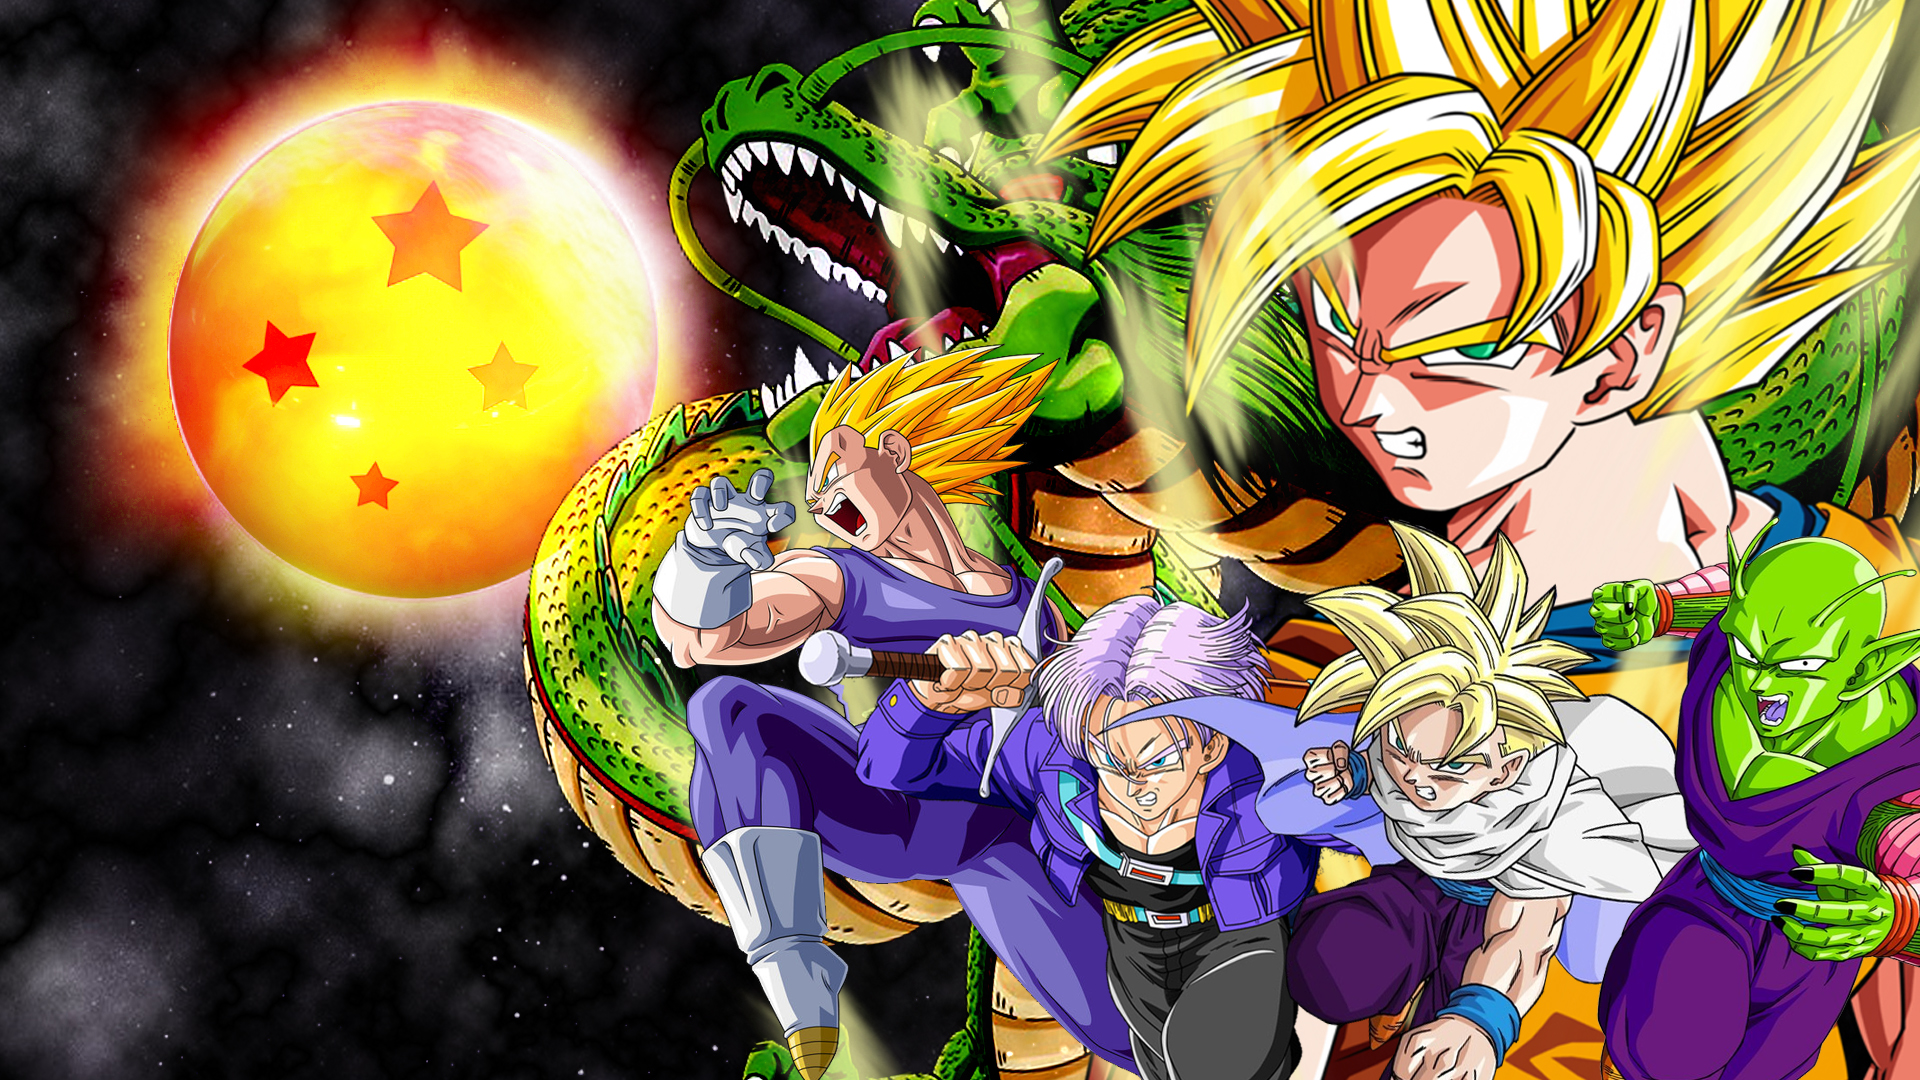 Event concert dragon ball une date et les prix for Chambre dragon ball z